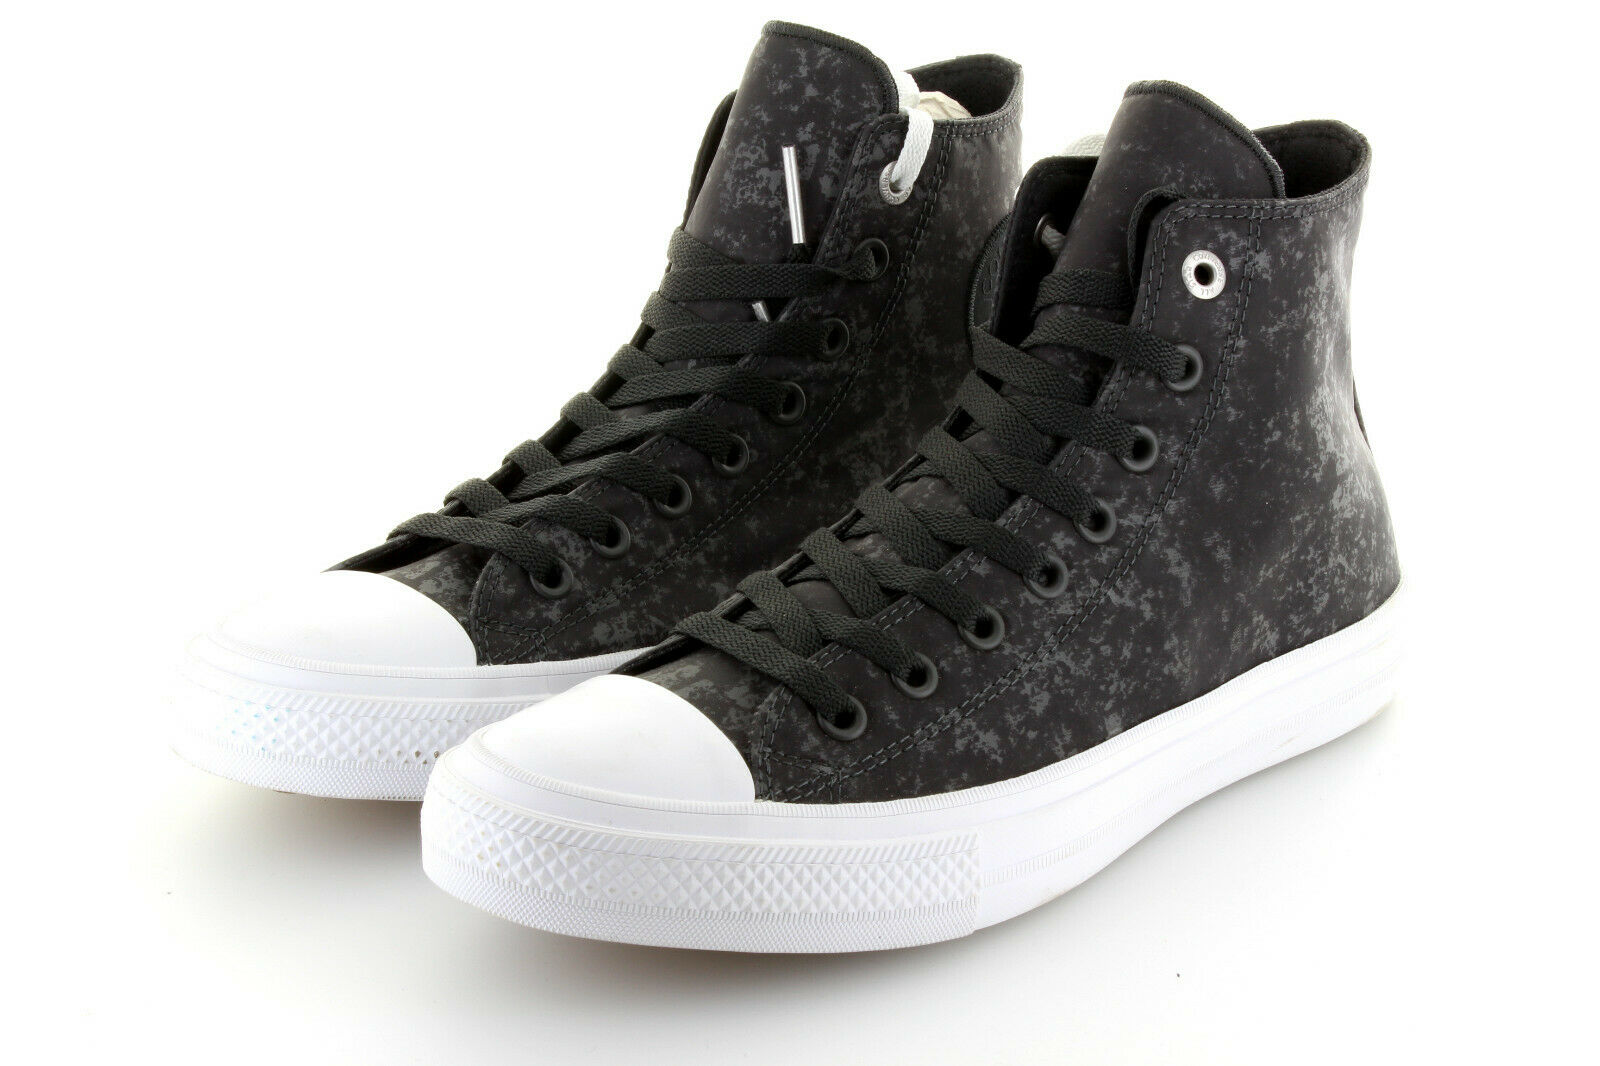 Converse Chuck Taylor AS II Hi Black Pure Silver Textile Shine  42,5   43 US9